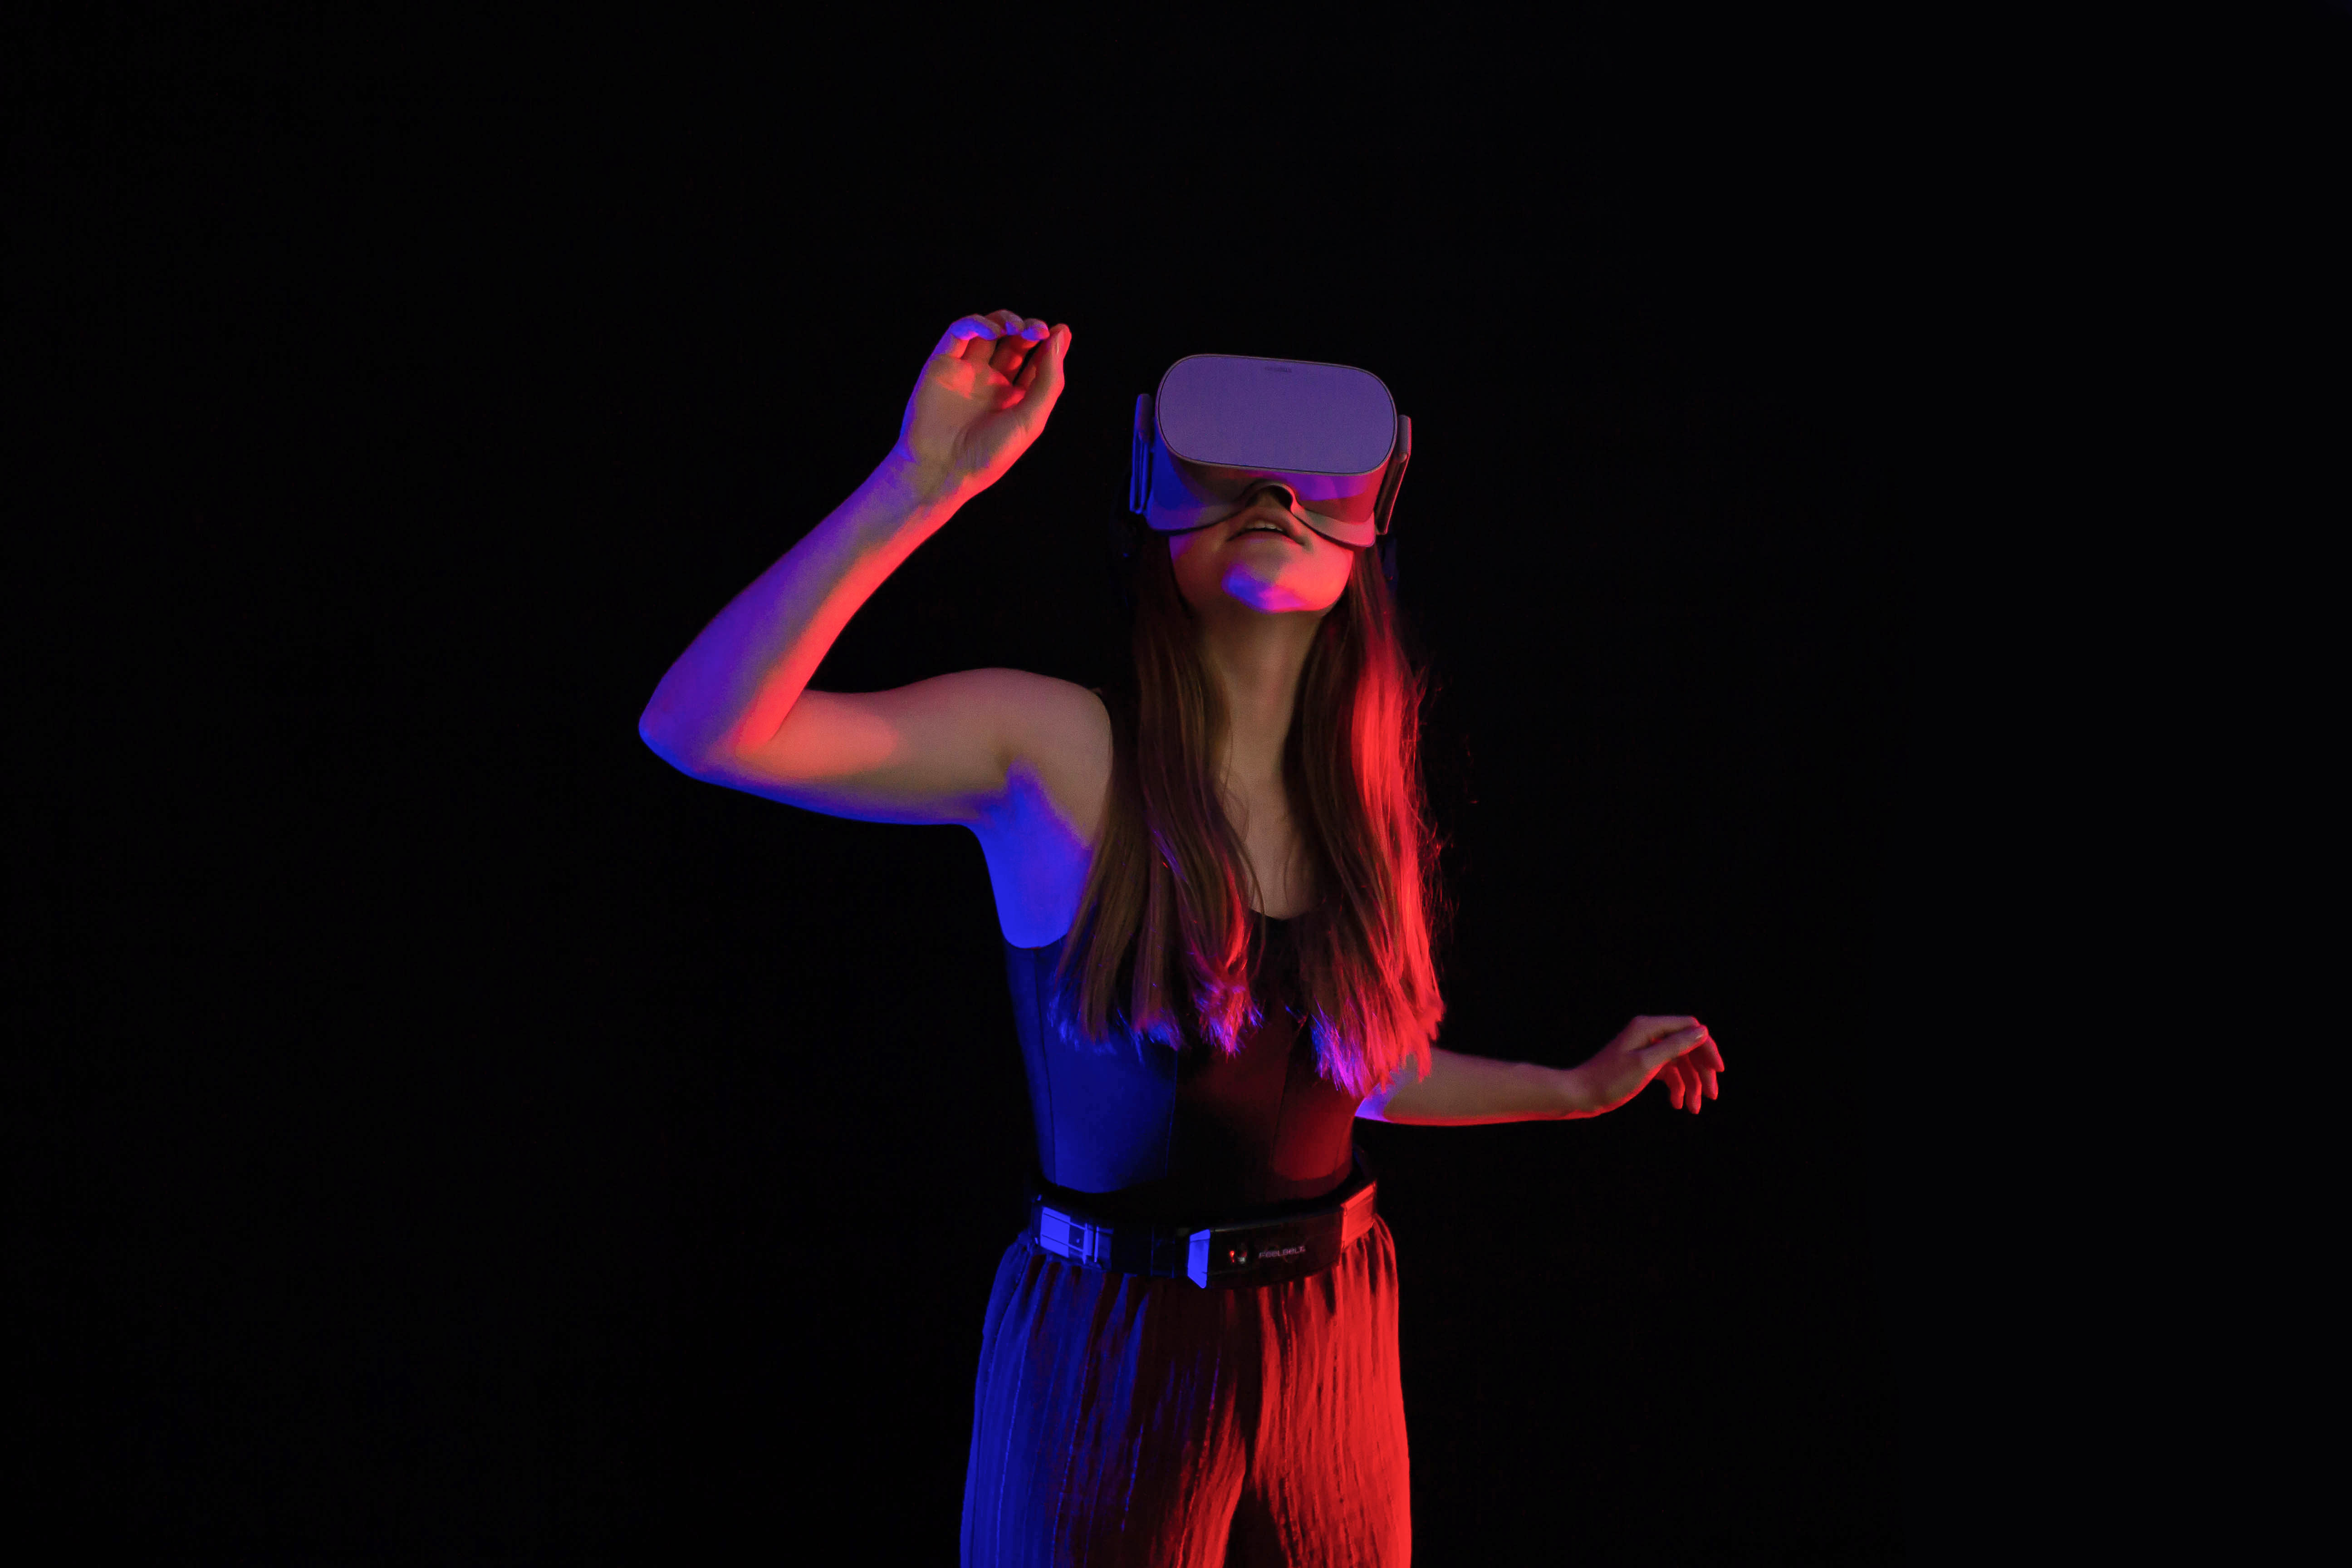 VR made better with feelbelt